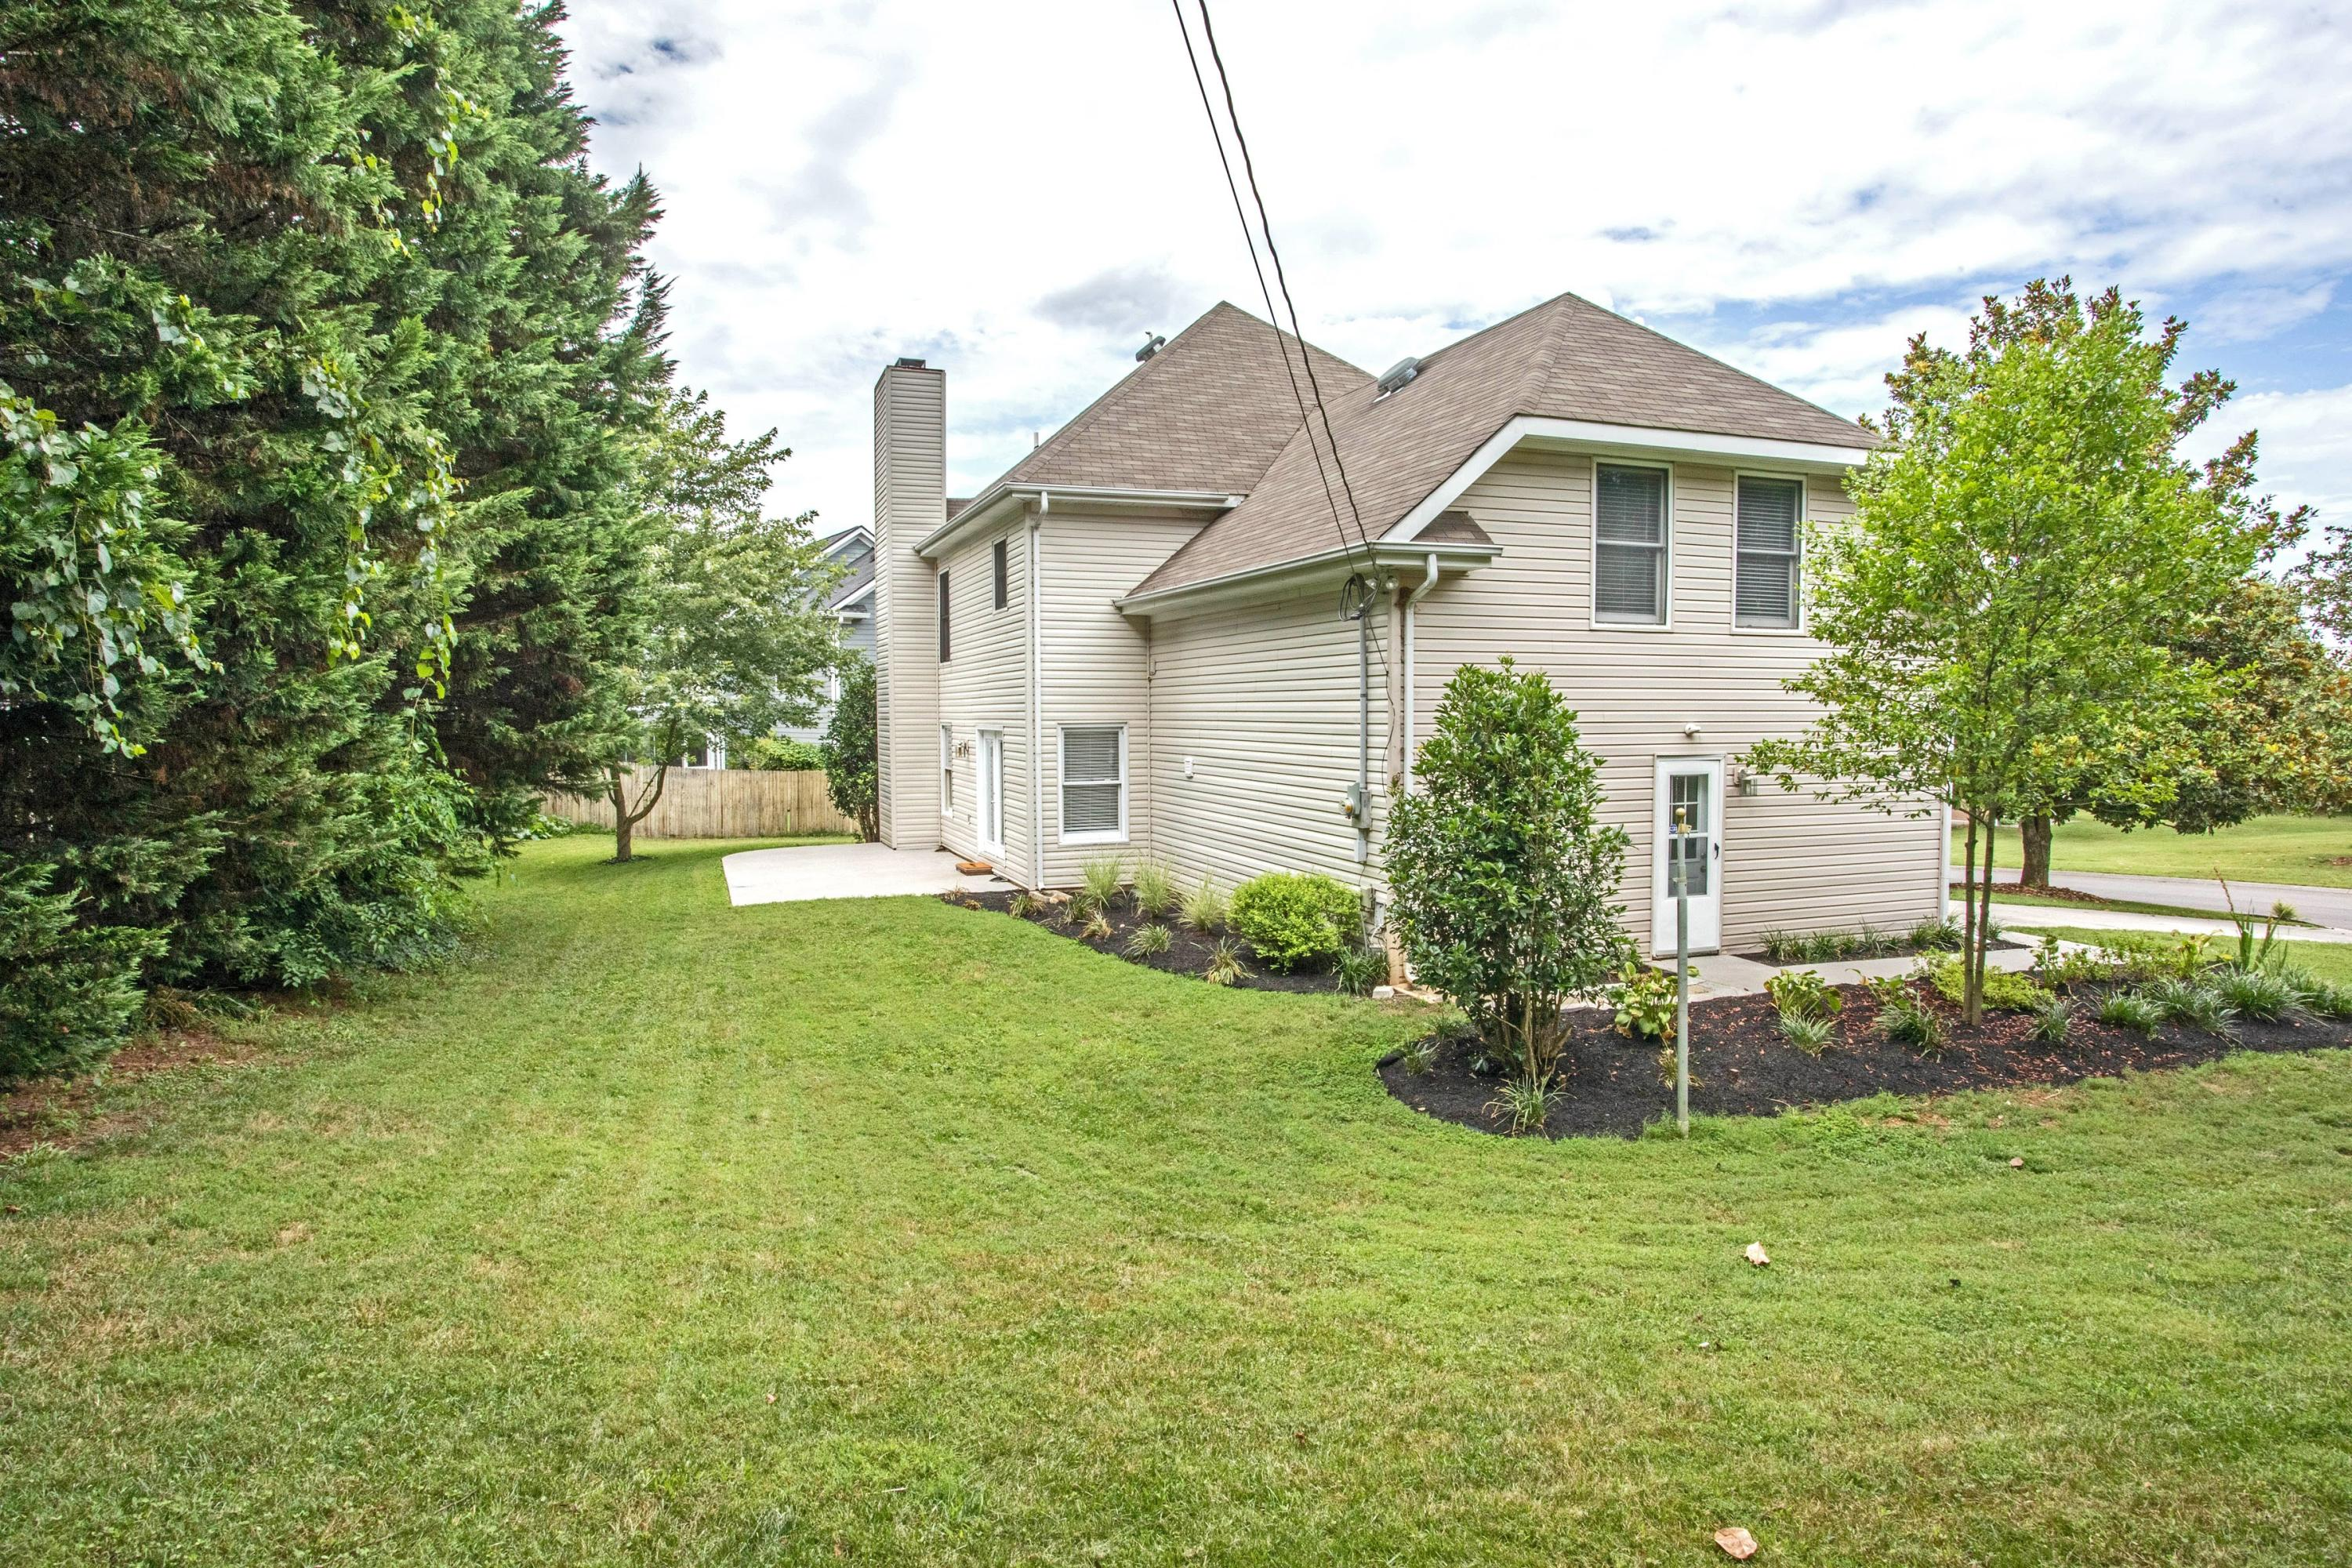 8900 Straw Flower Drive, Knoxville, Tennessee 37922, 4 Bedrooms Bedrooms, ,2 BathroomsBathrooms,Single Family,For Sale,Straw Flower,1087865